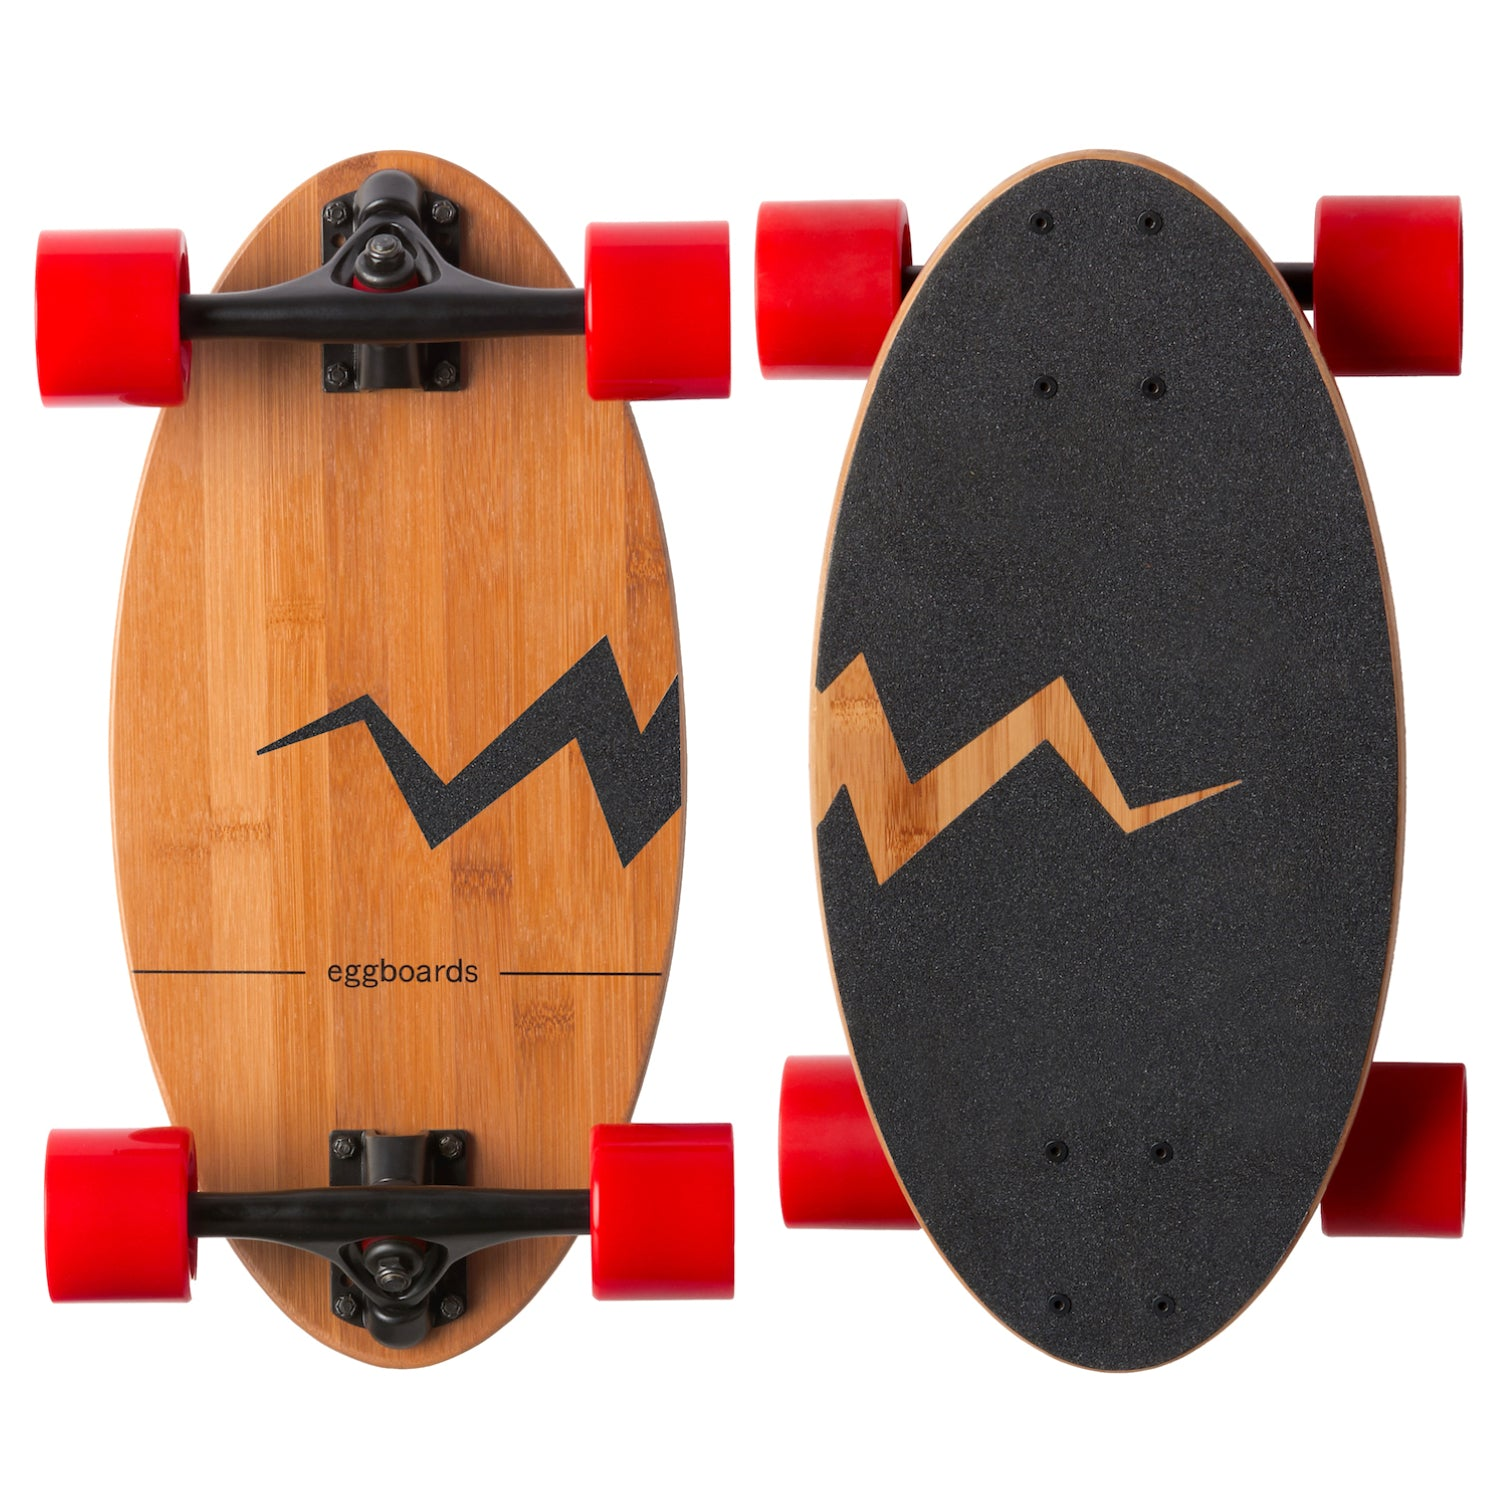 Eggboards Mini Cruiser Longboard Bamboo Skateboard Red Wheels